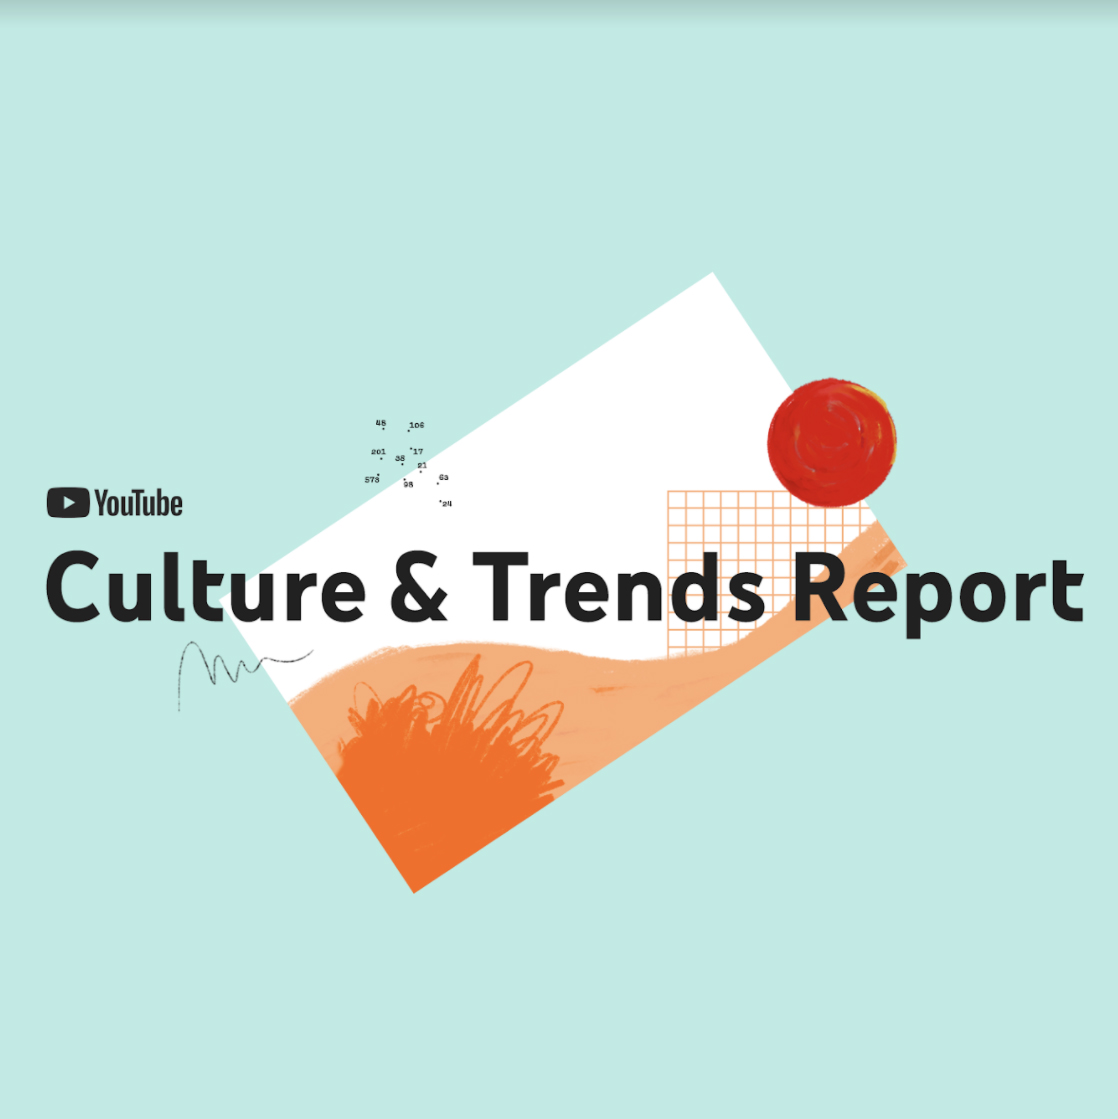 YouTube Culture & Trends Report 2020